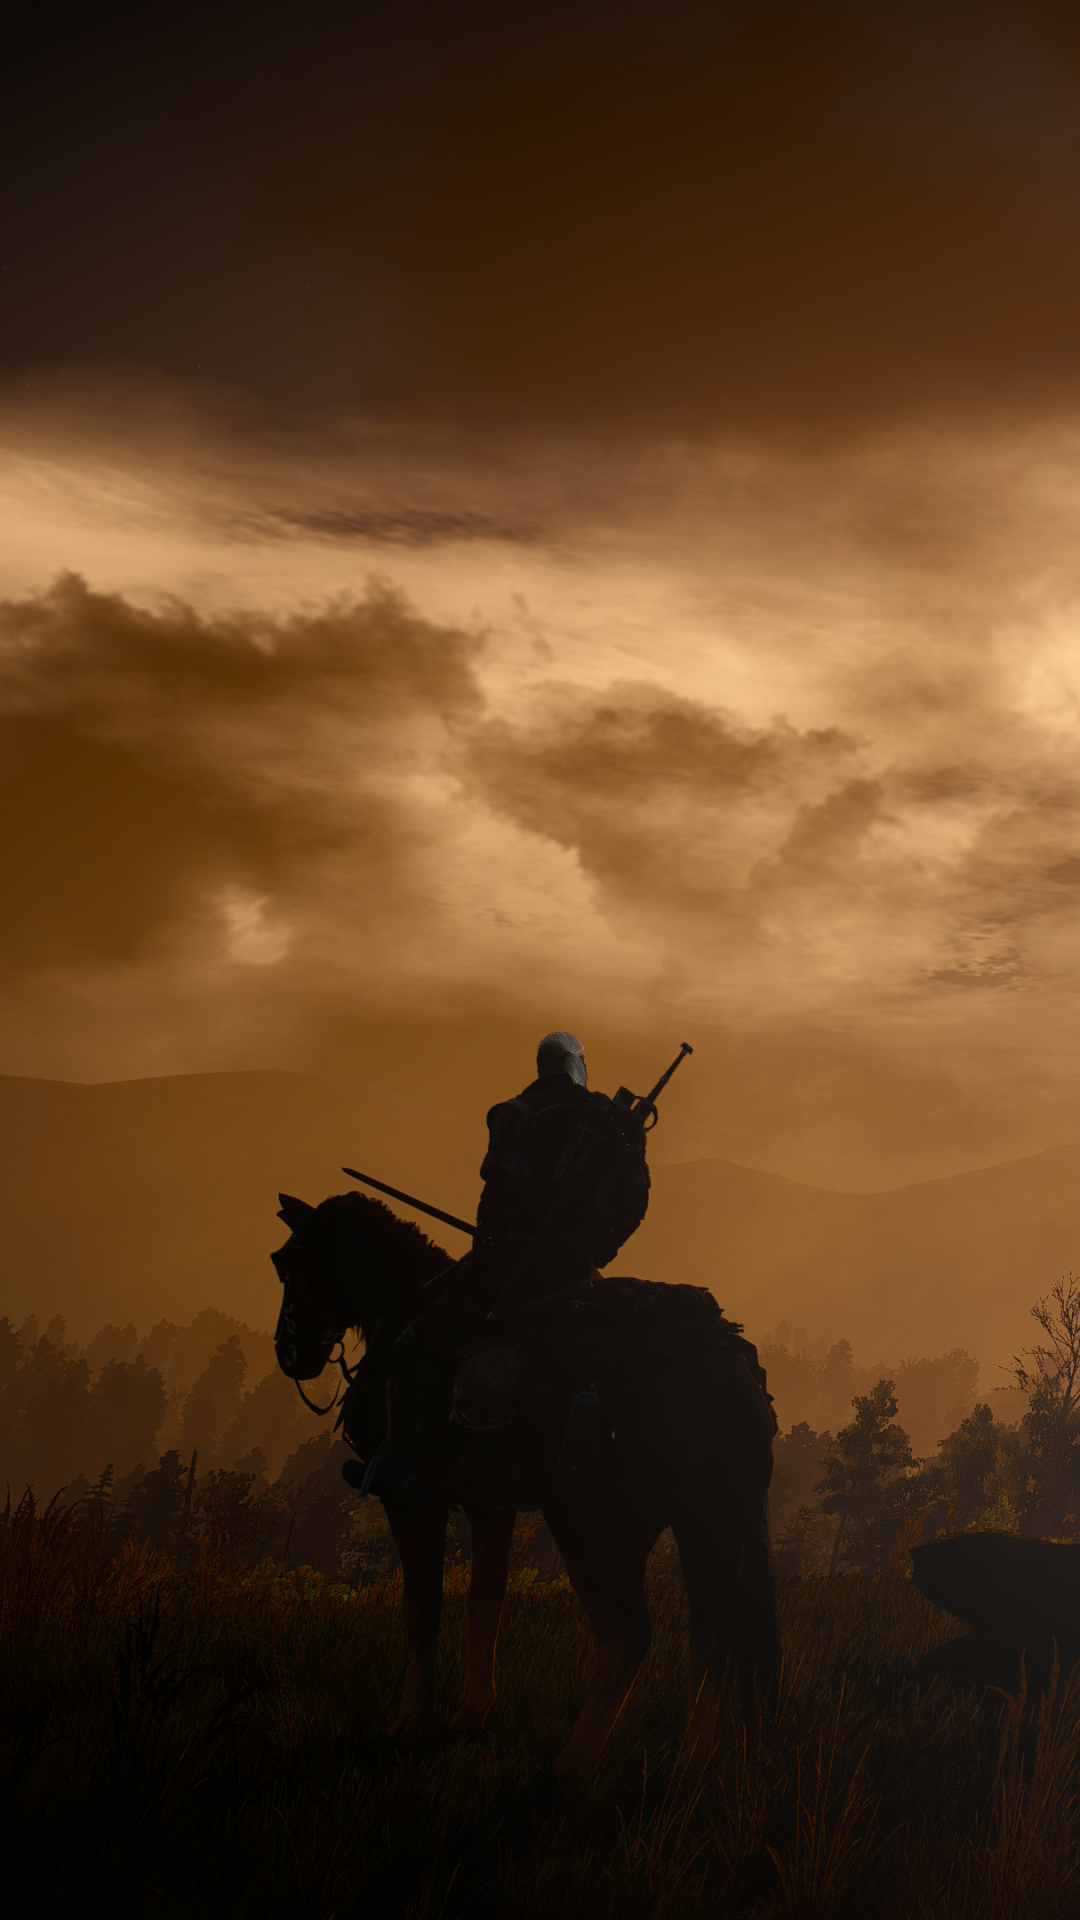 Download-this-iPhone-Plus-Video-Game-The-Witcher-Wild-Hunt-1080x1920-for-all-your-wallpaper-wpc9004446